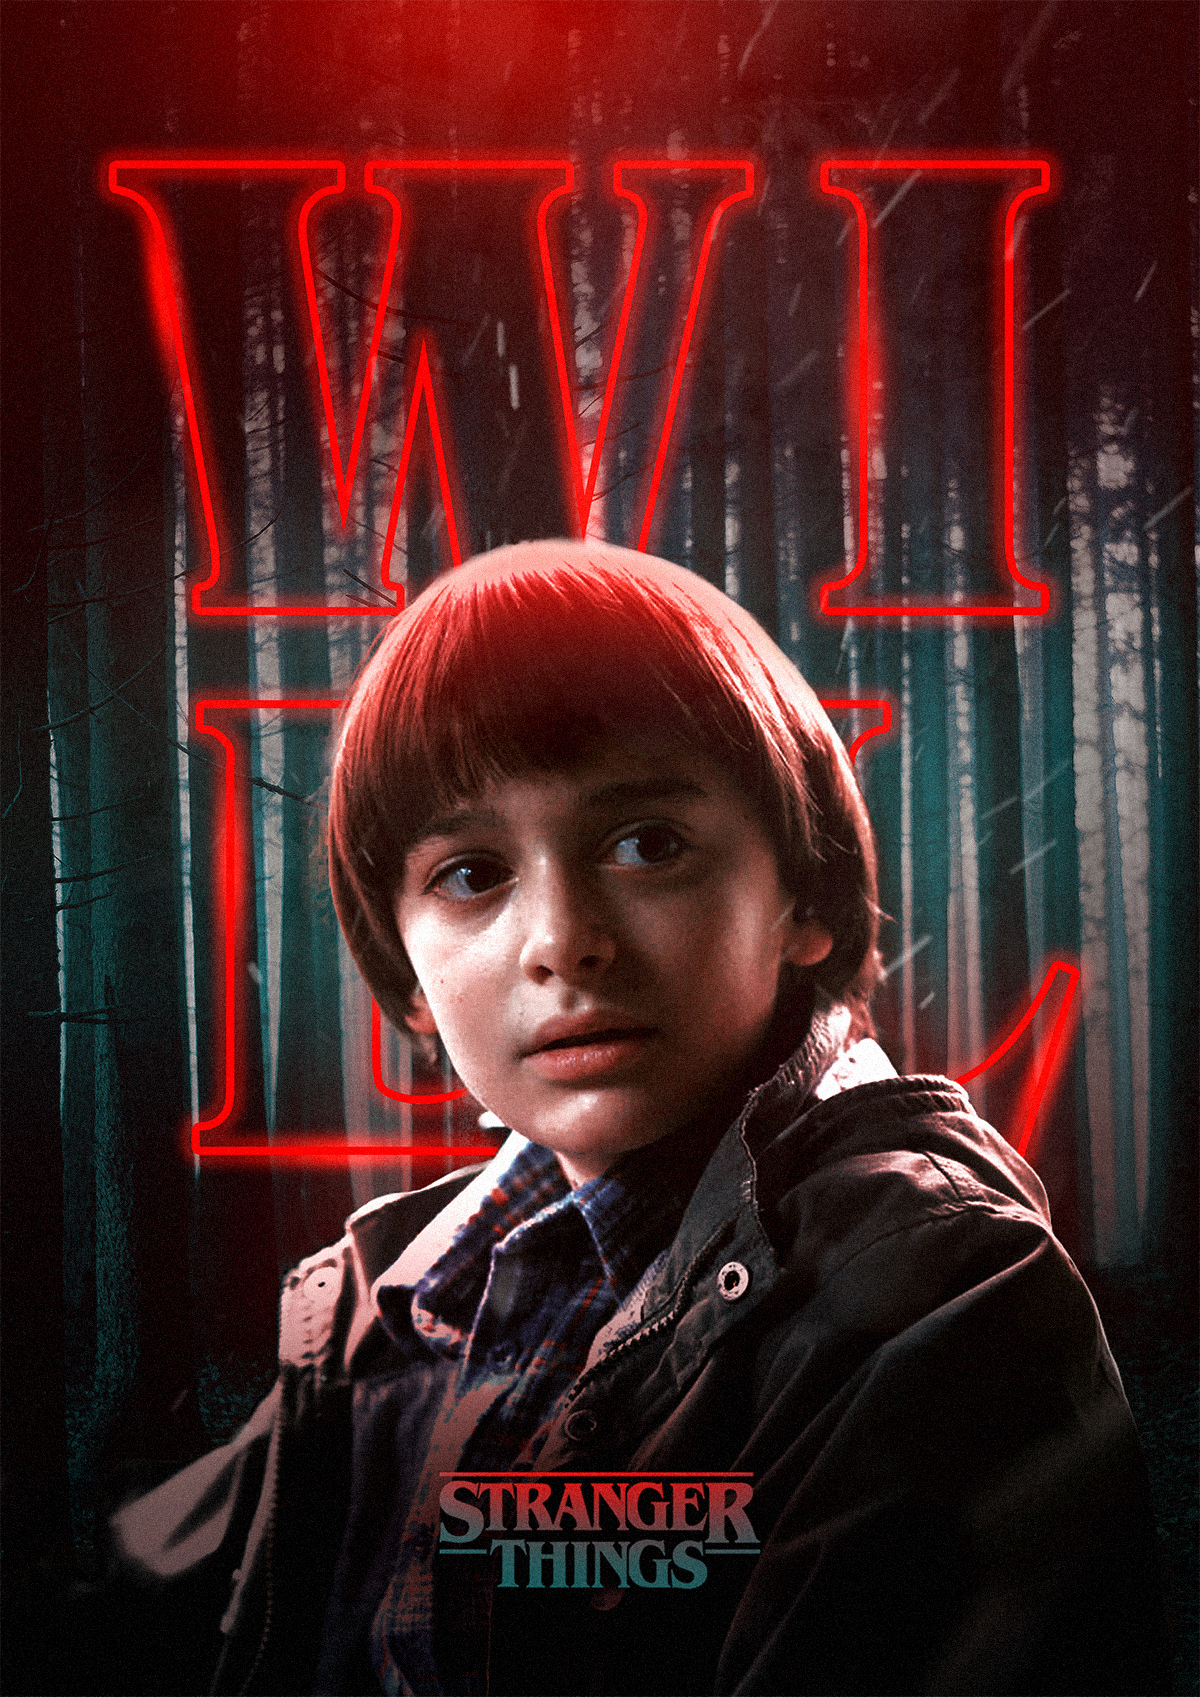 Spooky Stranger Things Characters Posters (9 pics)